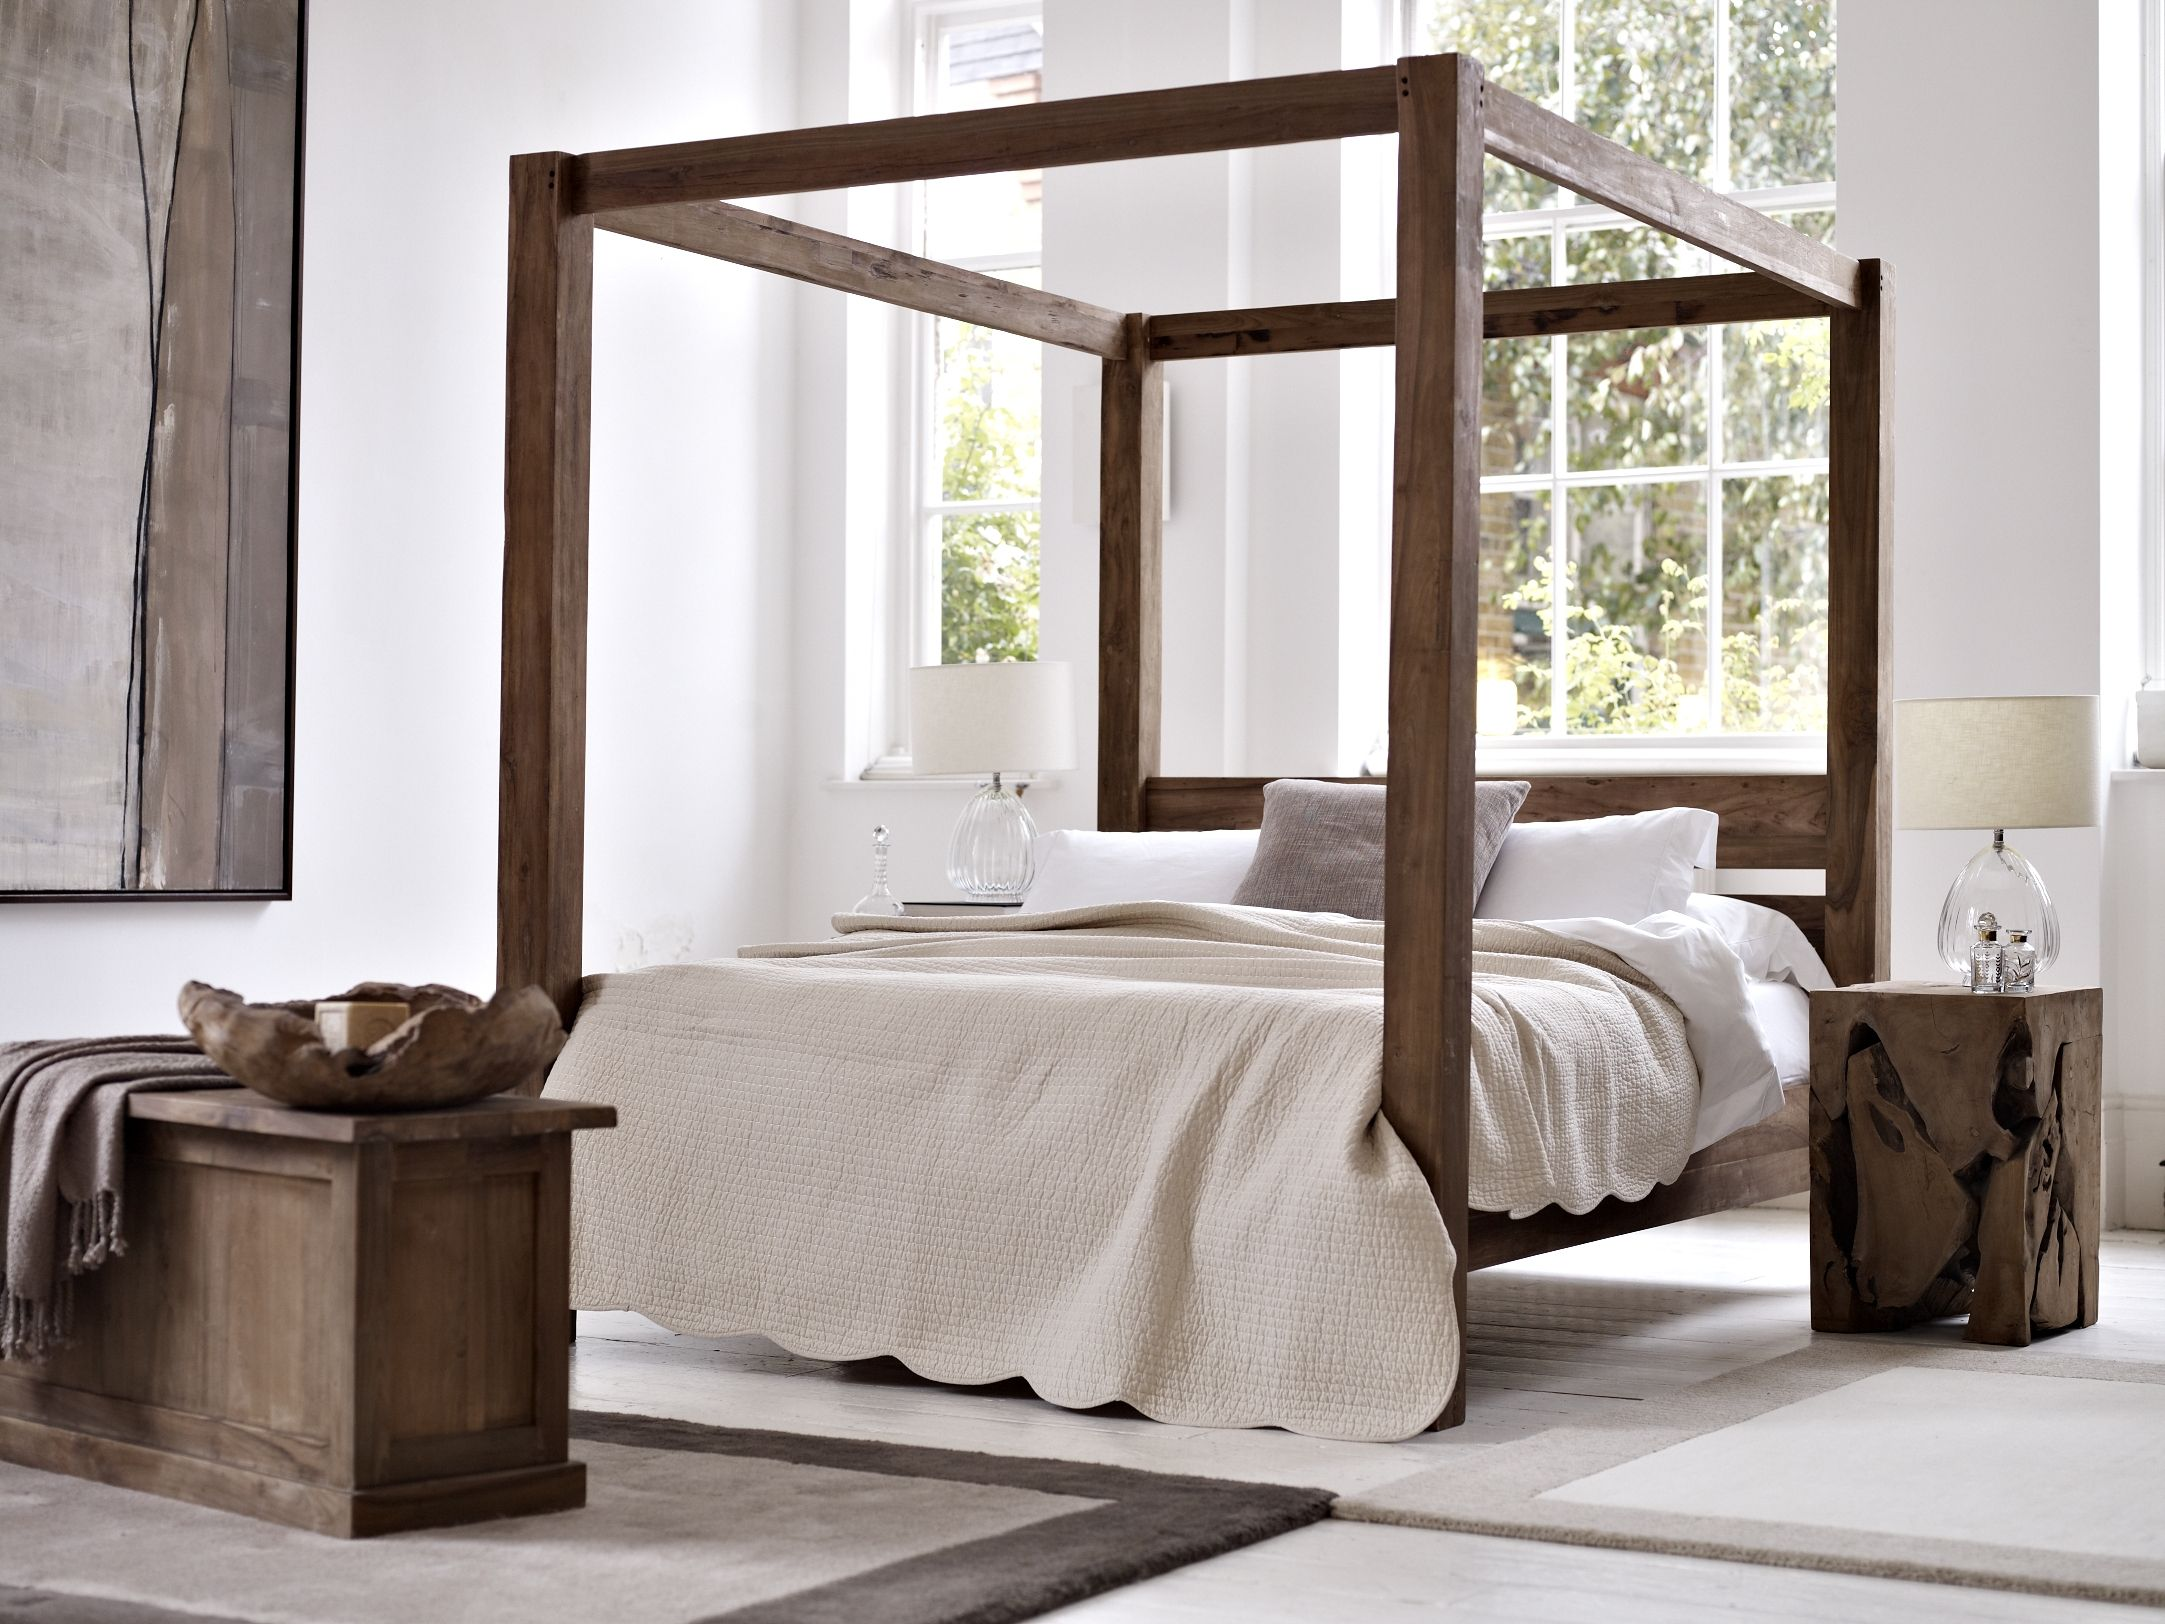 Reclaimed Teak Four Poster Bed In Natural Teak With Teak Root